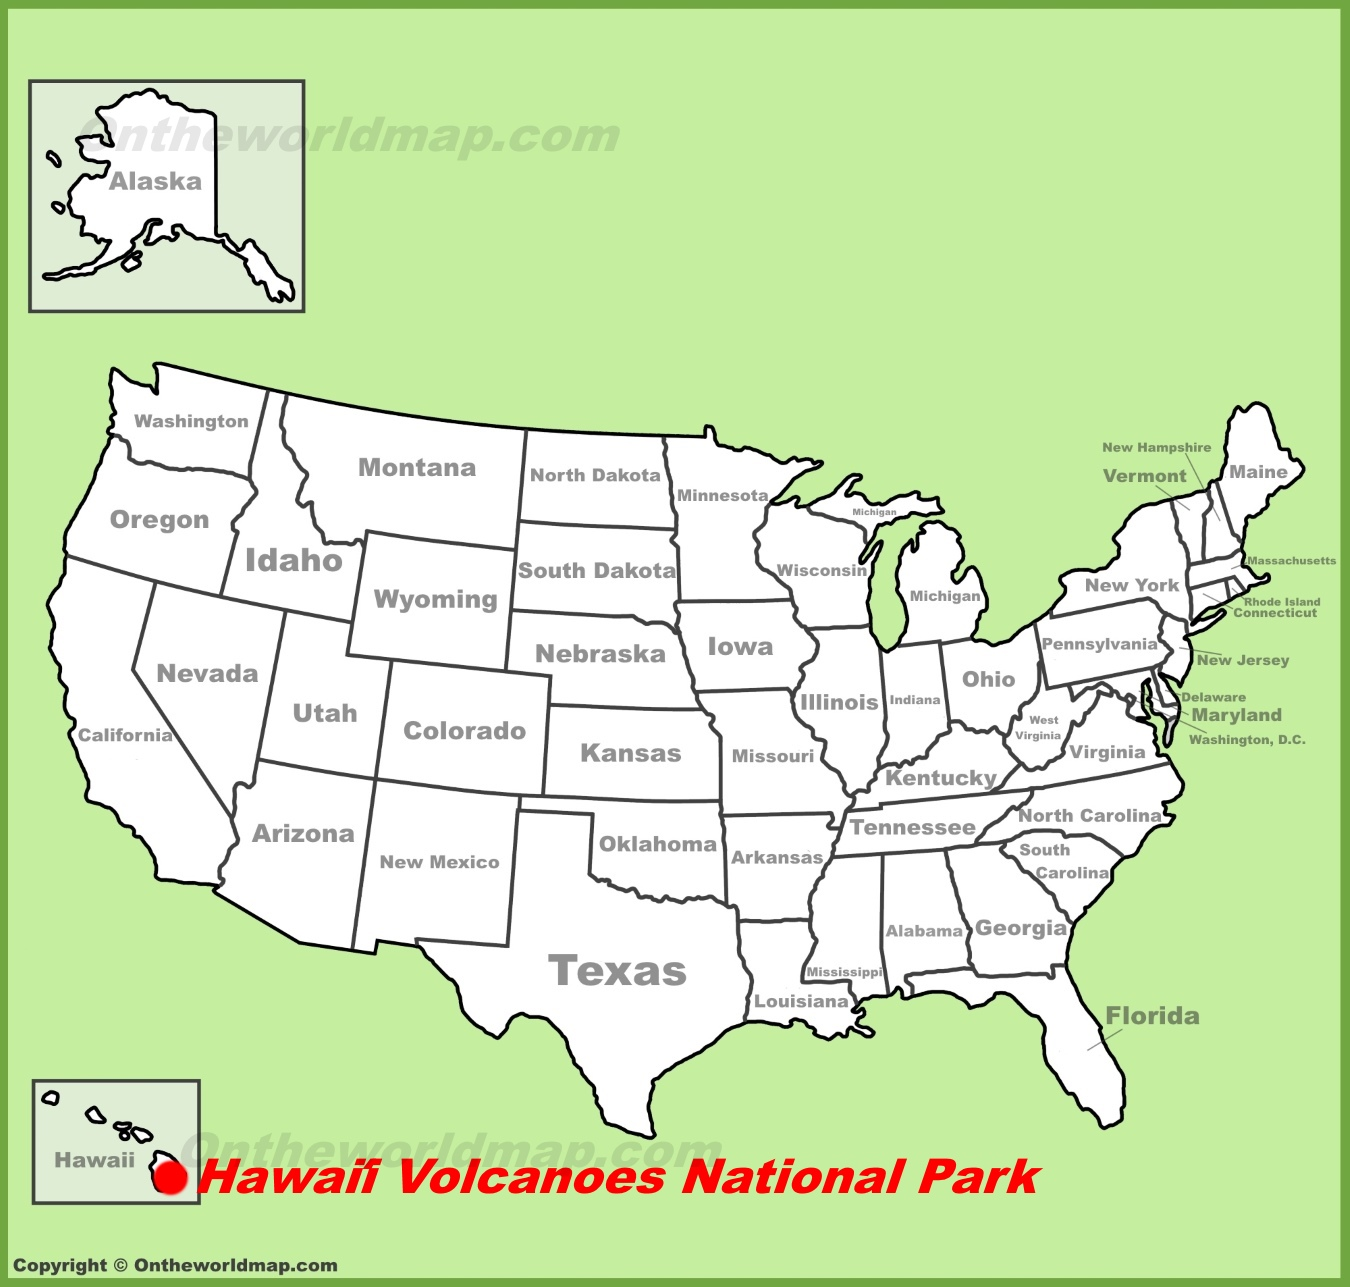 Hawaii Volcanoes location on the US Map